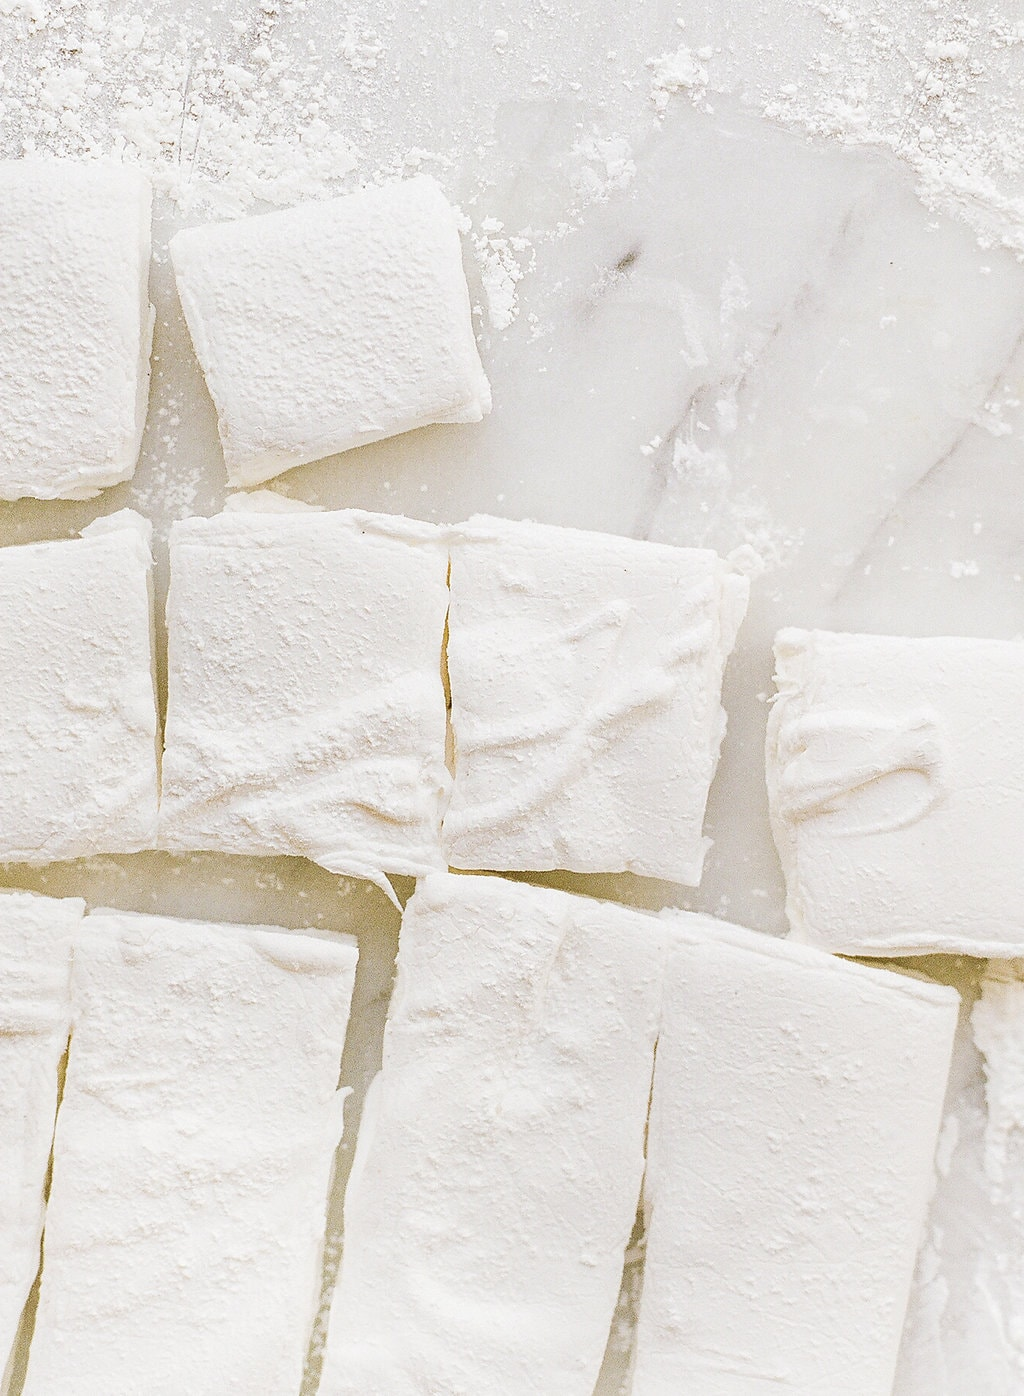 How to Make Marshmallows that are light, fluffy, springy, and loaded with vanilla flavor. Perfect for gift giving or for making homemade s'mores!